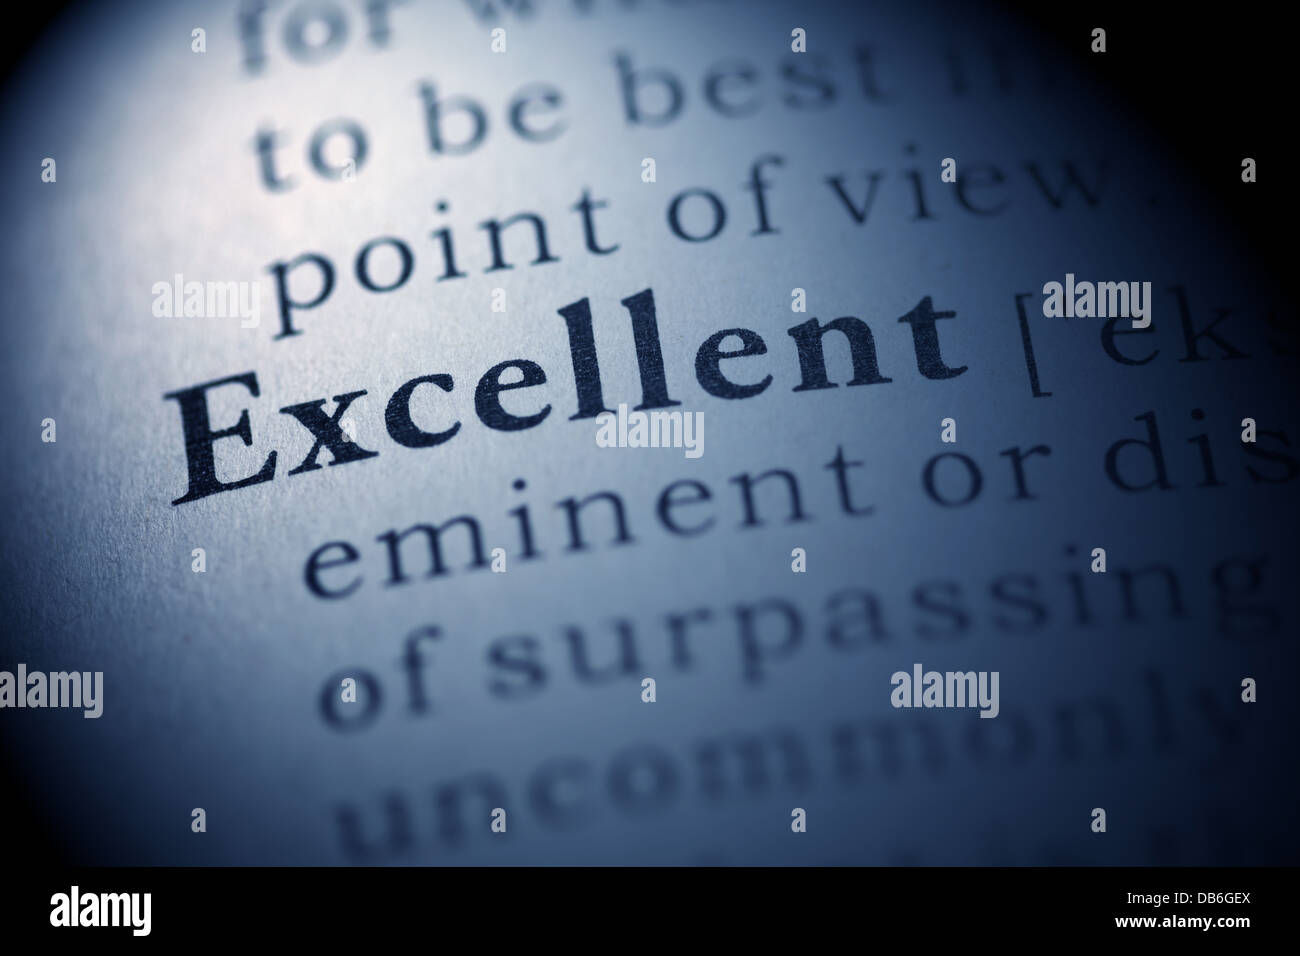 Fake Dictionary, Dictionary definition of the word Excellent. - Stock Image